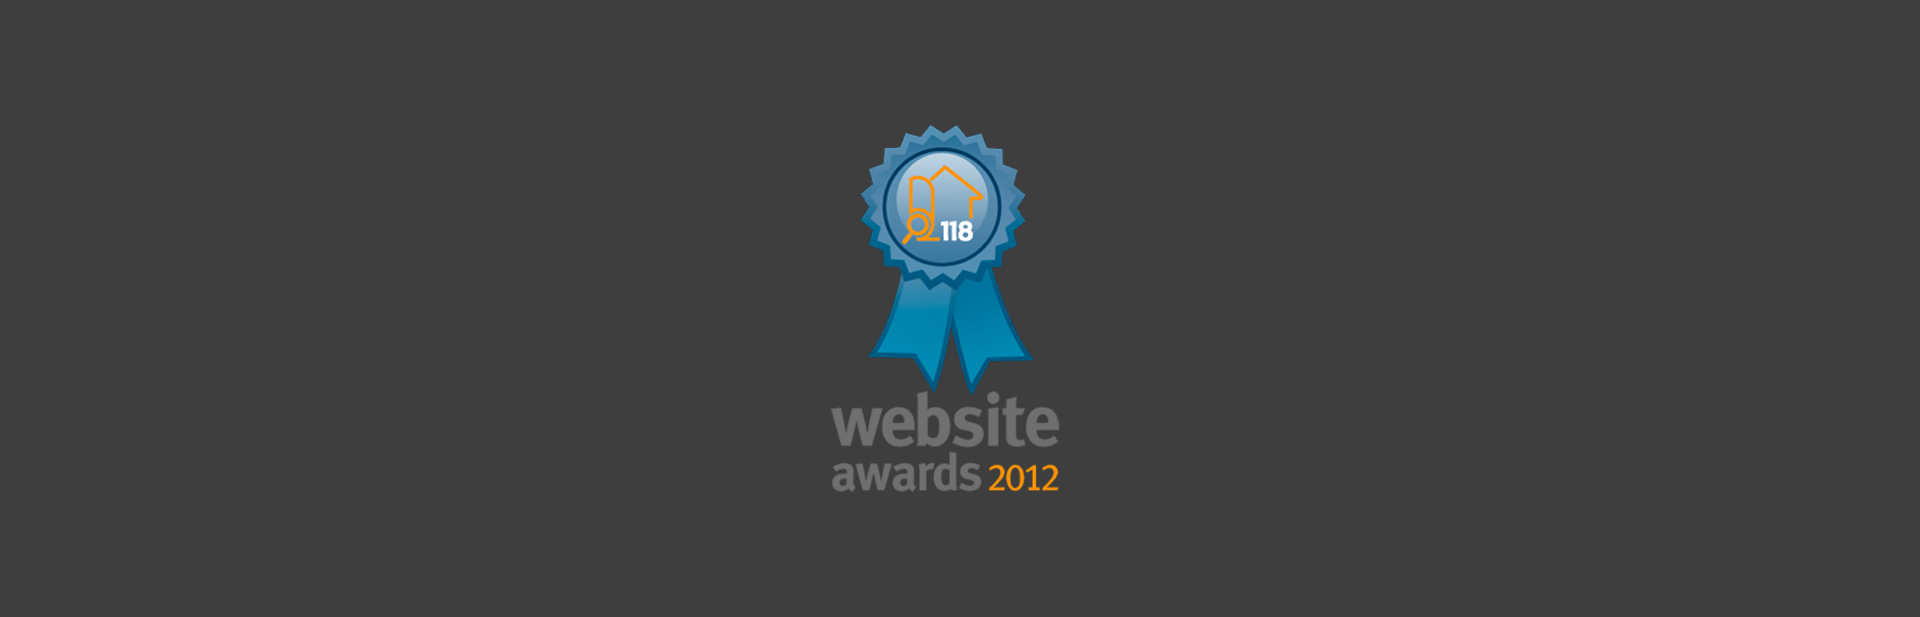 Estate Agent Website Awards 2012